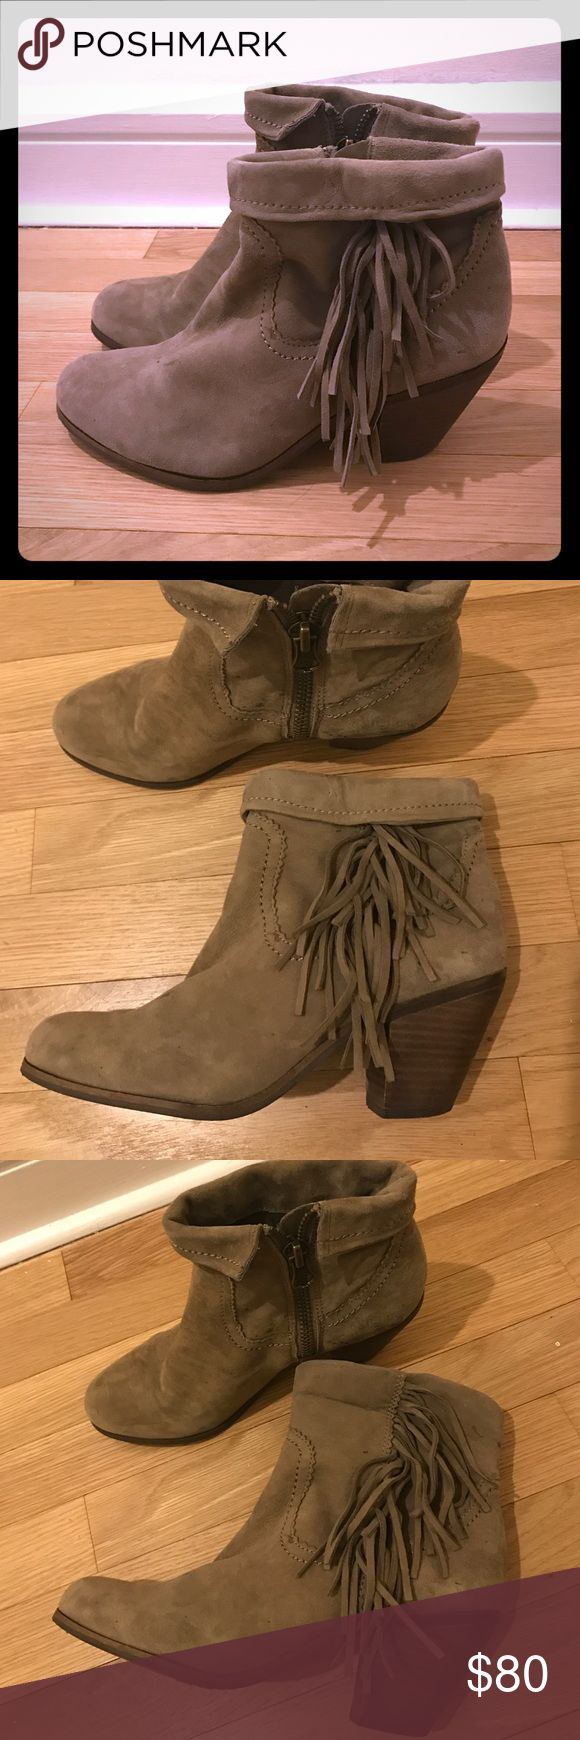 Sam Edelman fringe bootie very comfy heel Sam Edelman fringe bootie very comfy heel in taupe color, goes with everything. Worn twice! Sam Edelman Shoes Ankle Boots & Booties